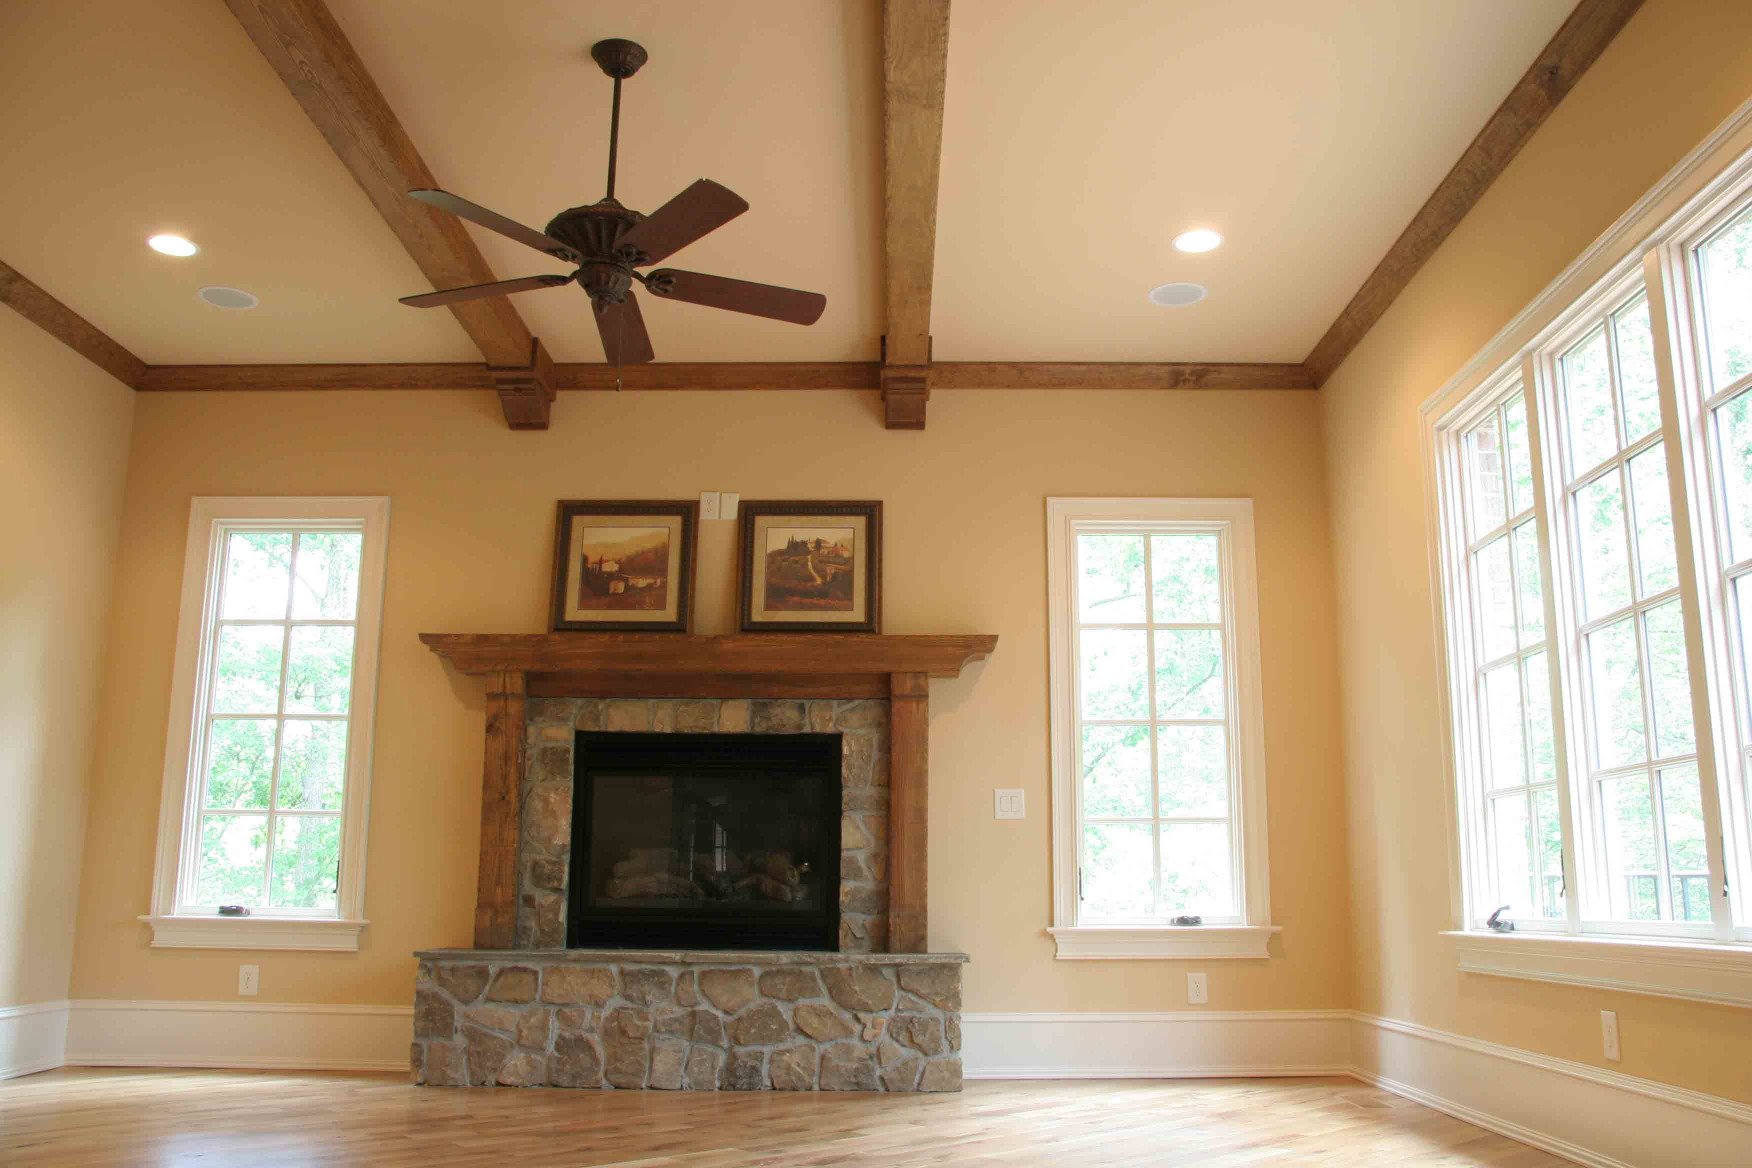 The wood beams, wood mantle with legs, and wood corbels are elegant in this room.